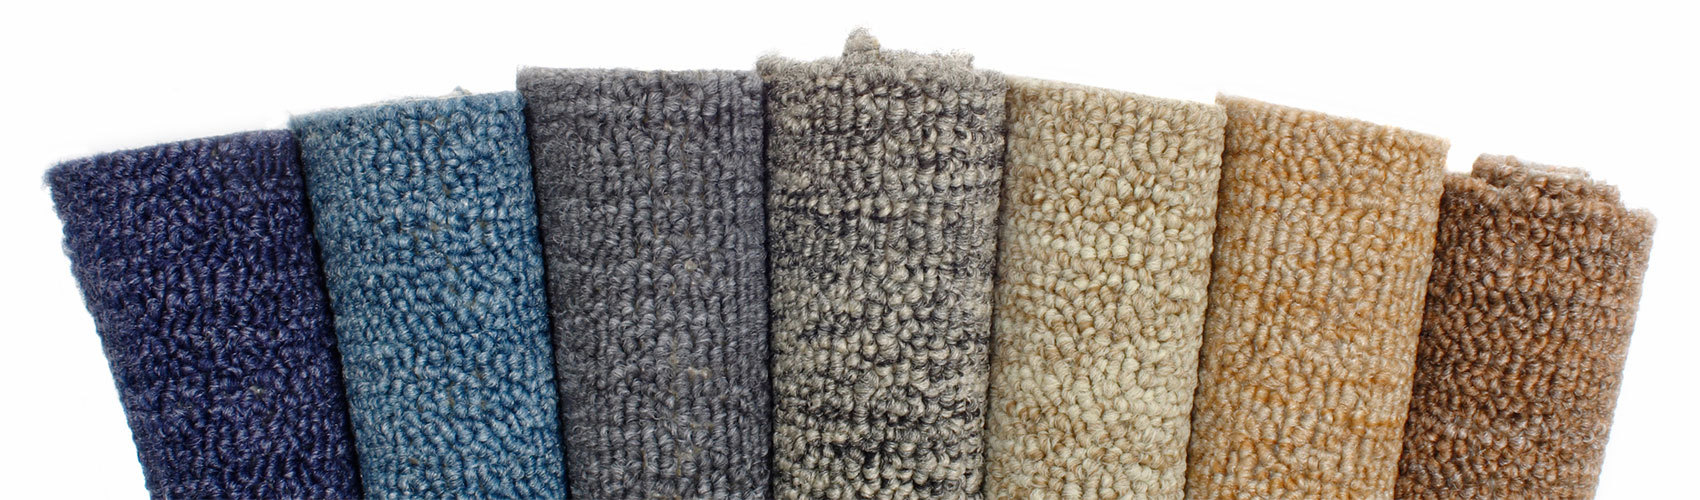 collection of rolled carpets